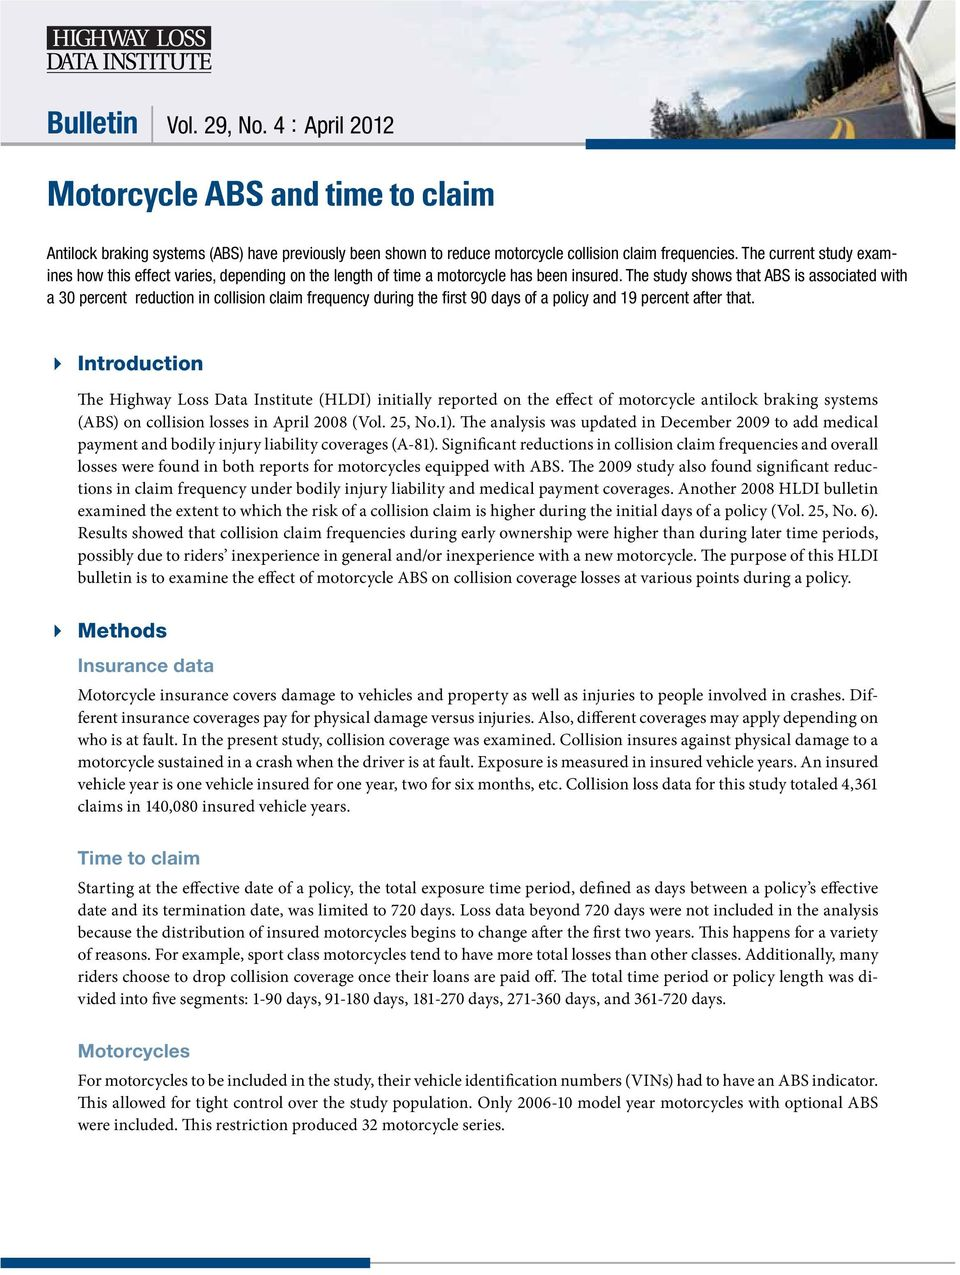 The study shows that ABS is associated with a 30 percent reduction in collision claim frequency during the first 90 of a policy and 19 percent after that.